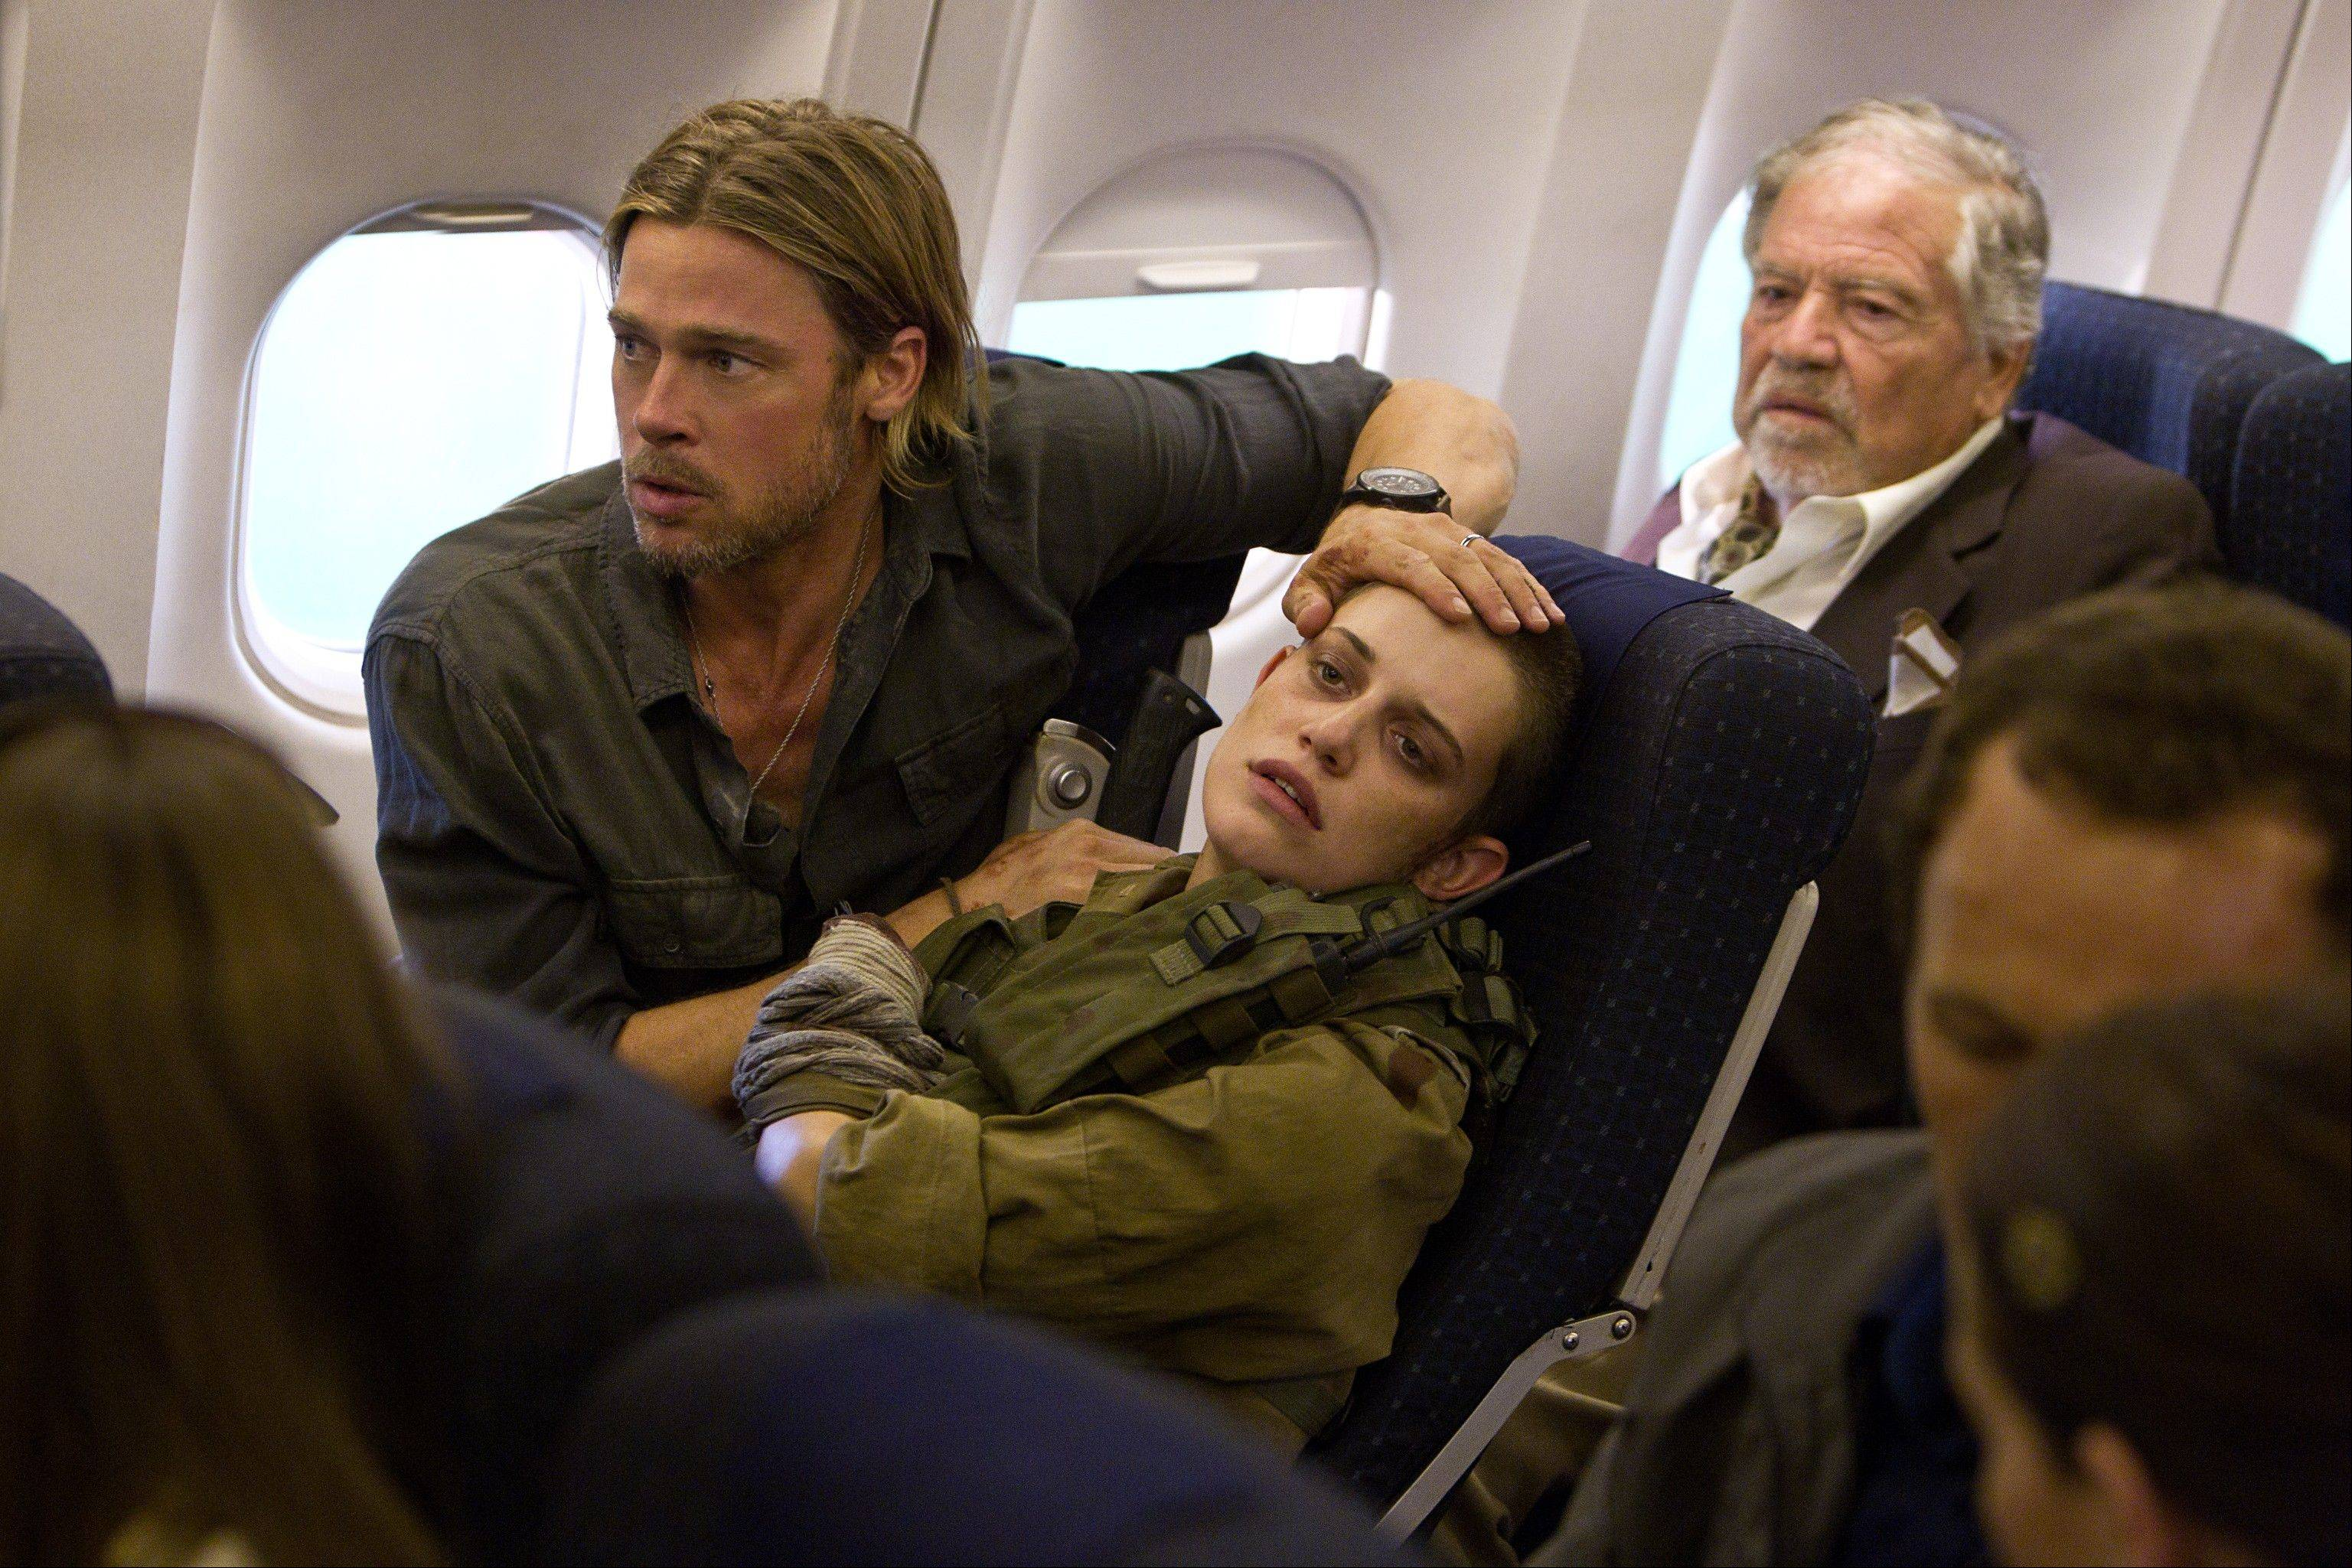 "U.N. investigator Gerry Lane (producer Brad Pitt) comforts a wounded Israeli soldier (Daniella Kertész) on an ill-fated plane trip in the action thriller ""World War Z."""